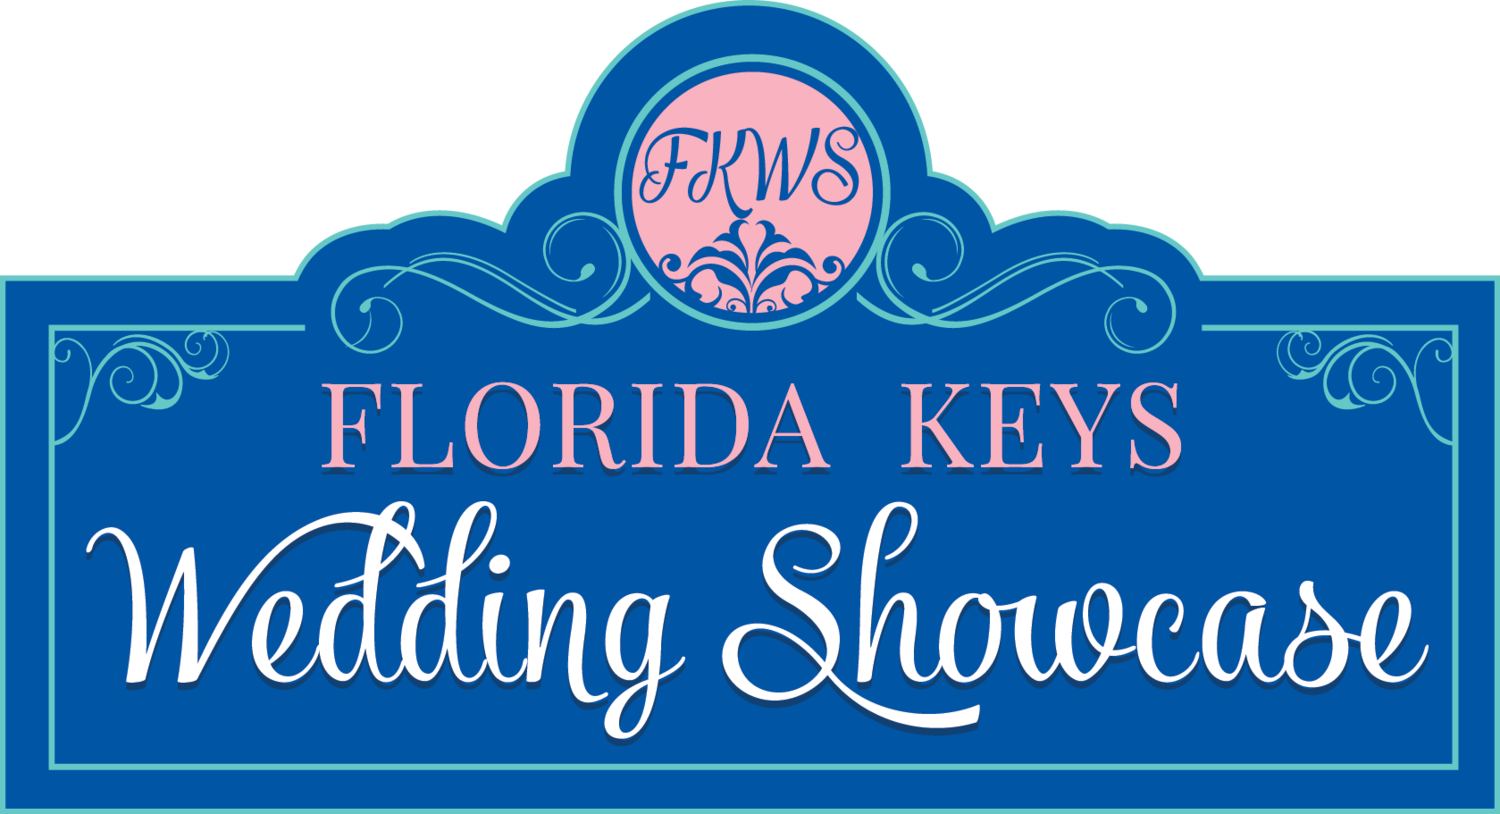 Florida Keys Wedding Showcase